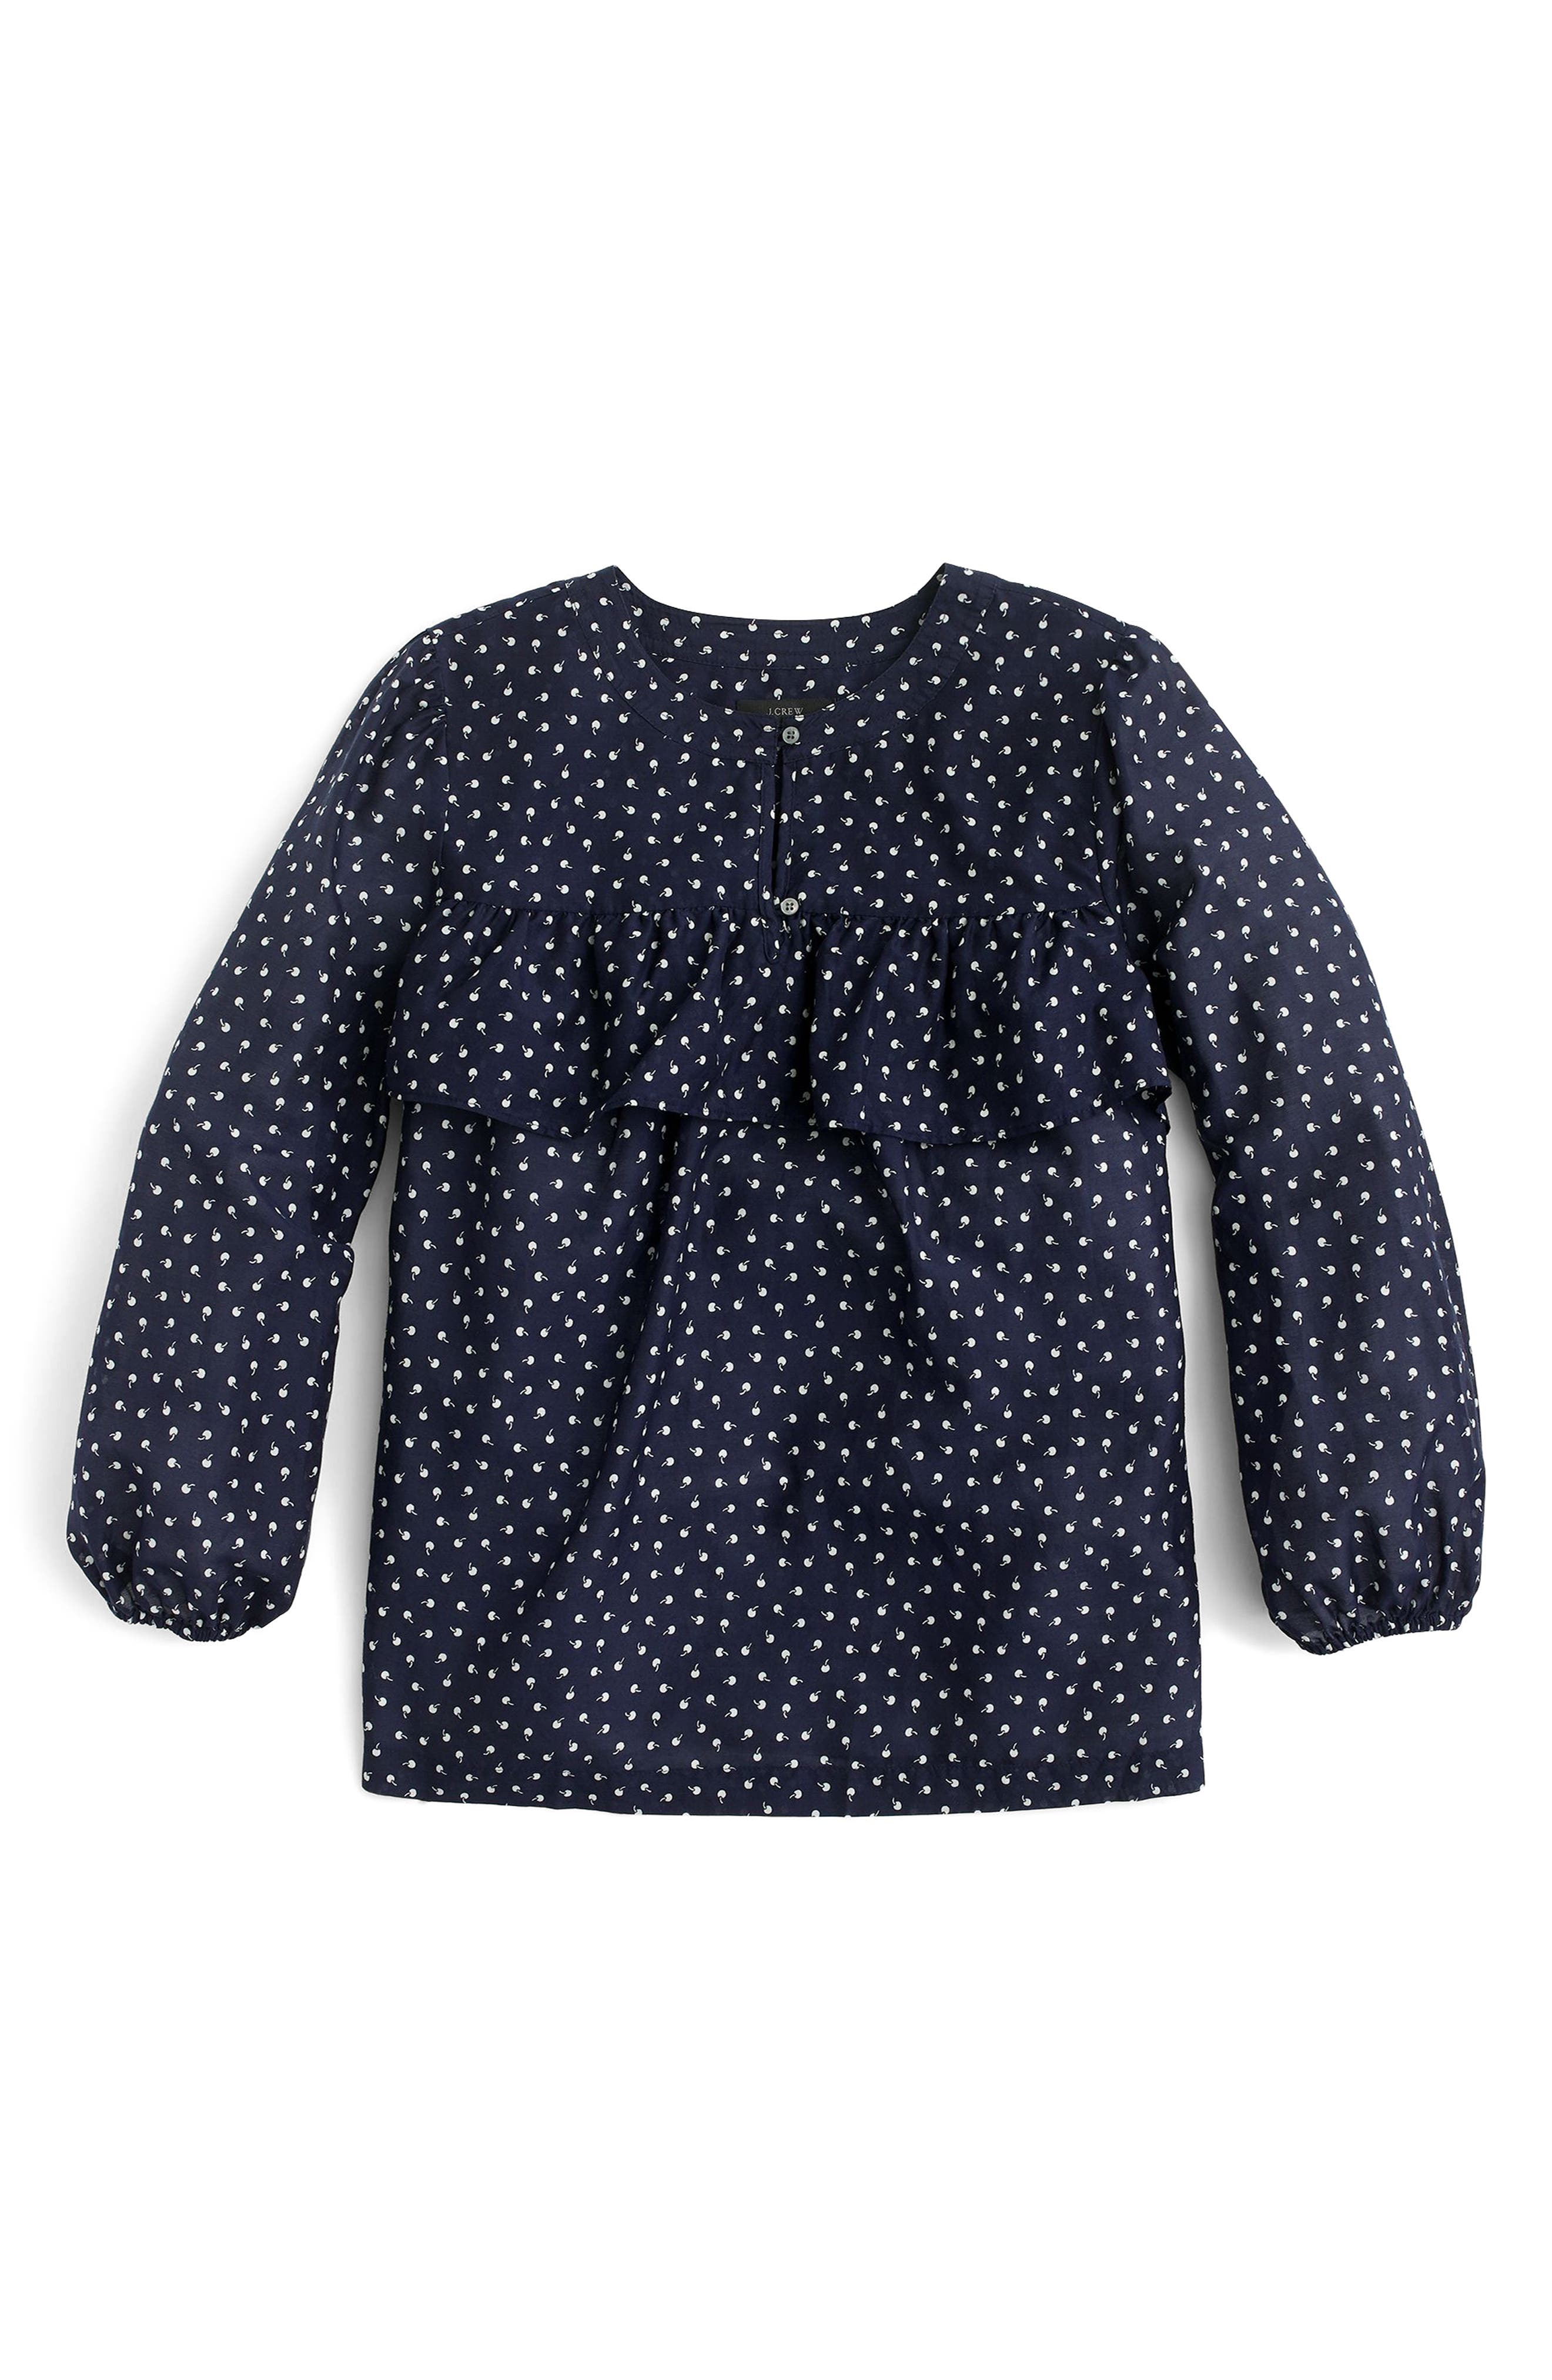 J. Crew Cherry Print Ruffle Top,                             Main thumbnail 1, color,                             010